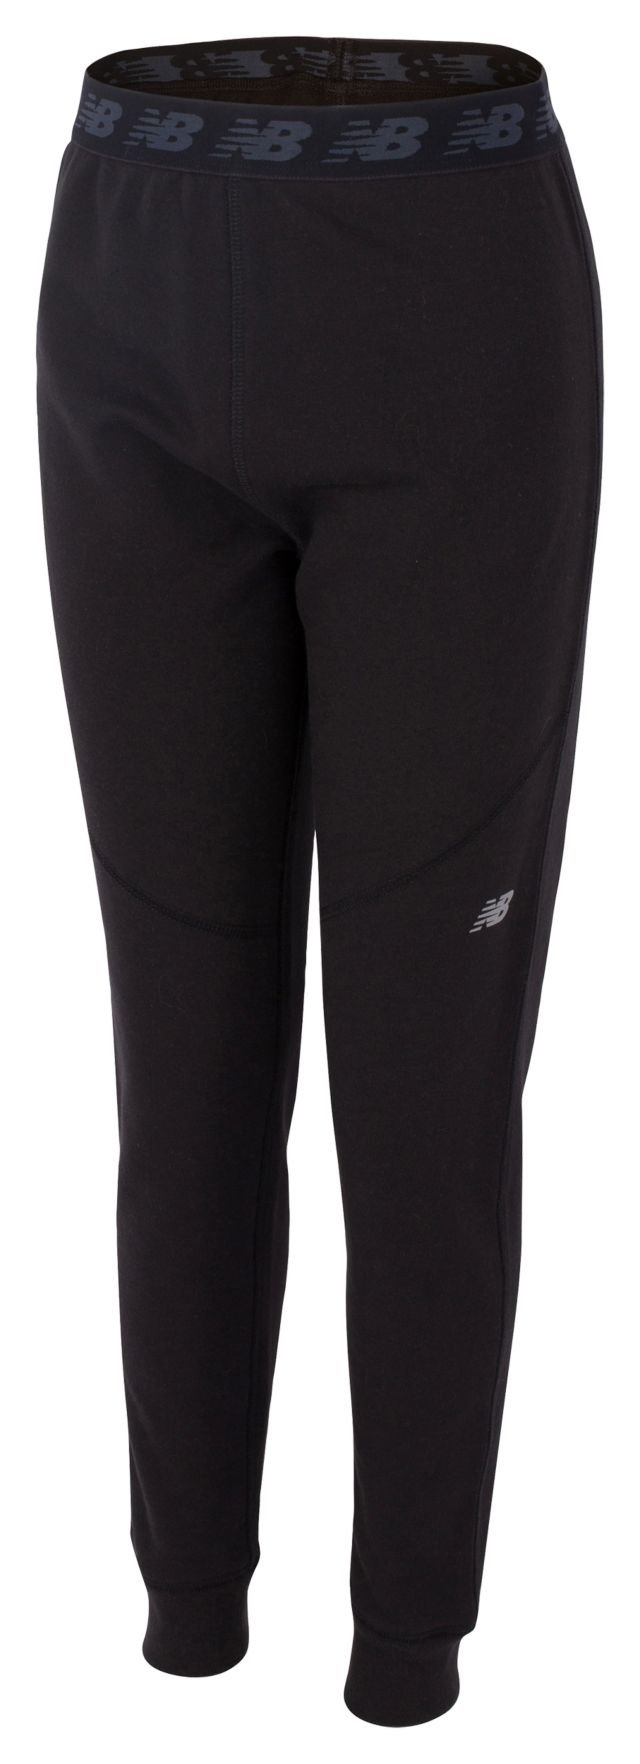 Kid's Micro Fleece Pant